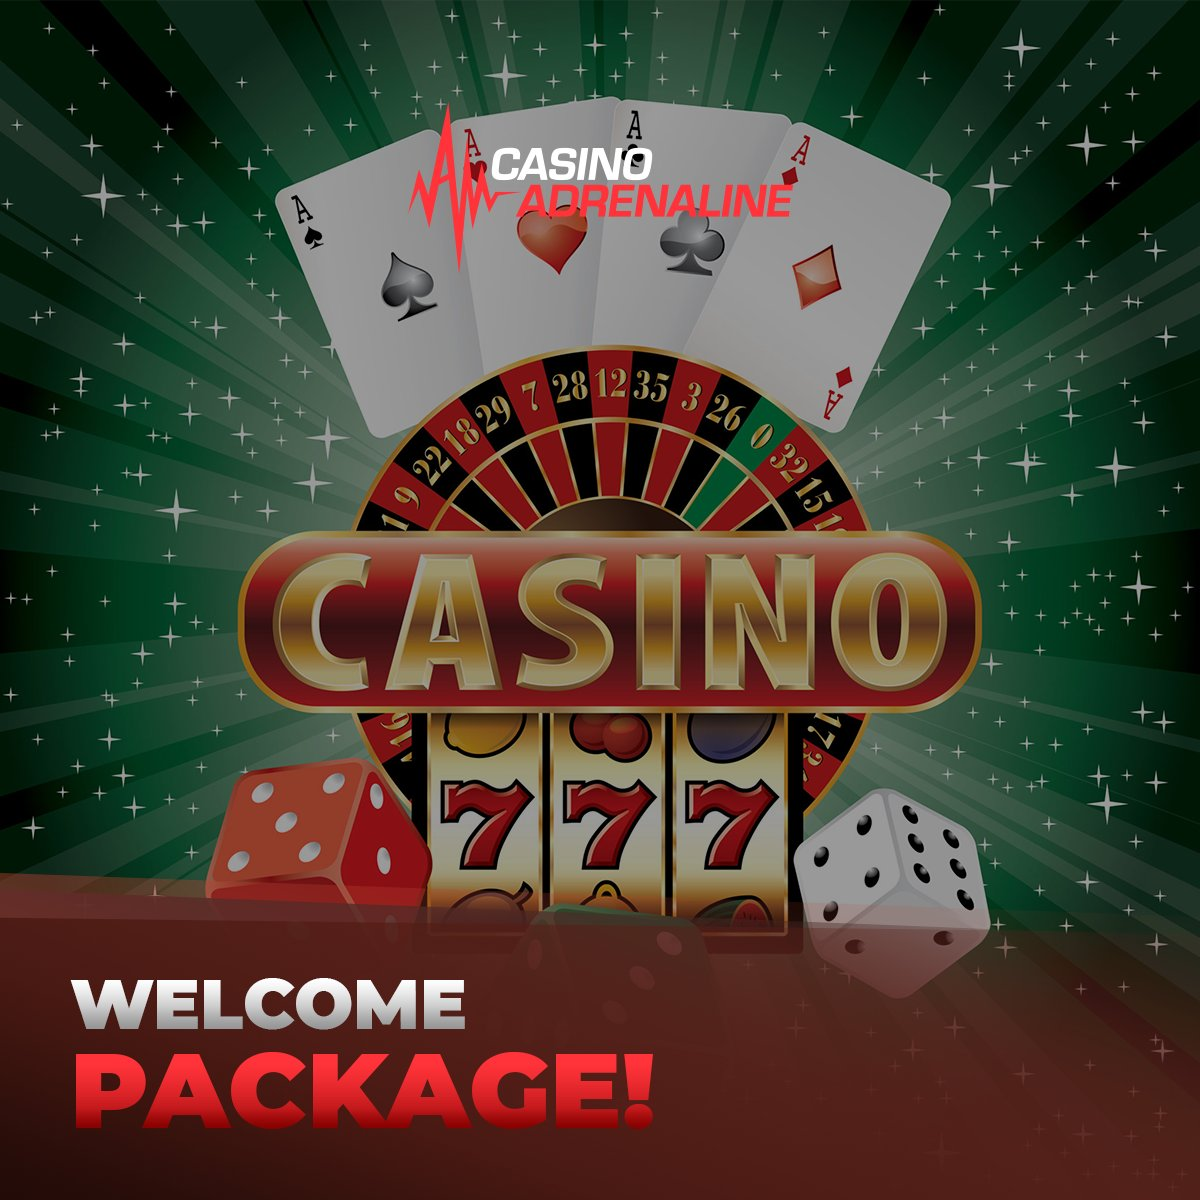 test Twitter Media - You haven't played our online casino yet? Don't miss our welcome package for new players! 😁 #CasinoAdrenaline #enjoythegame #welcomepackage #CasinoAdrenalingaming #casinos #slot #casinoluck https://t.co/5kH3PZyzTk